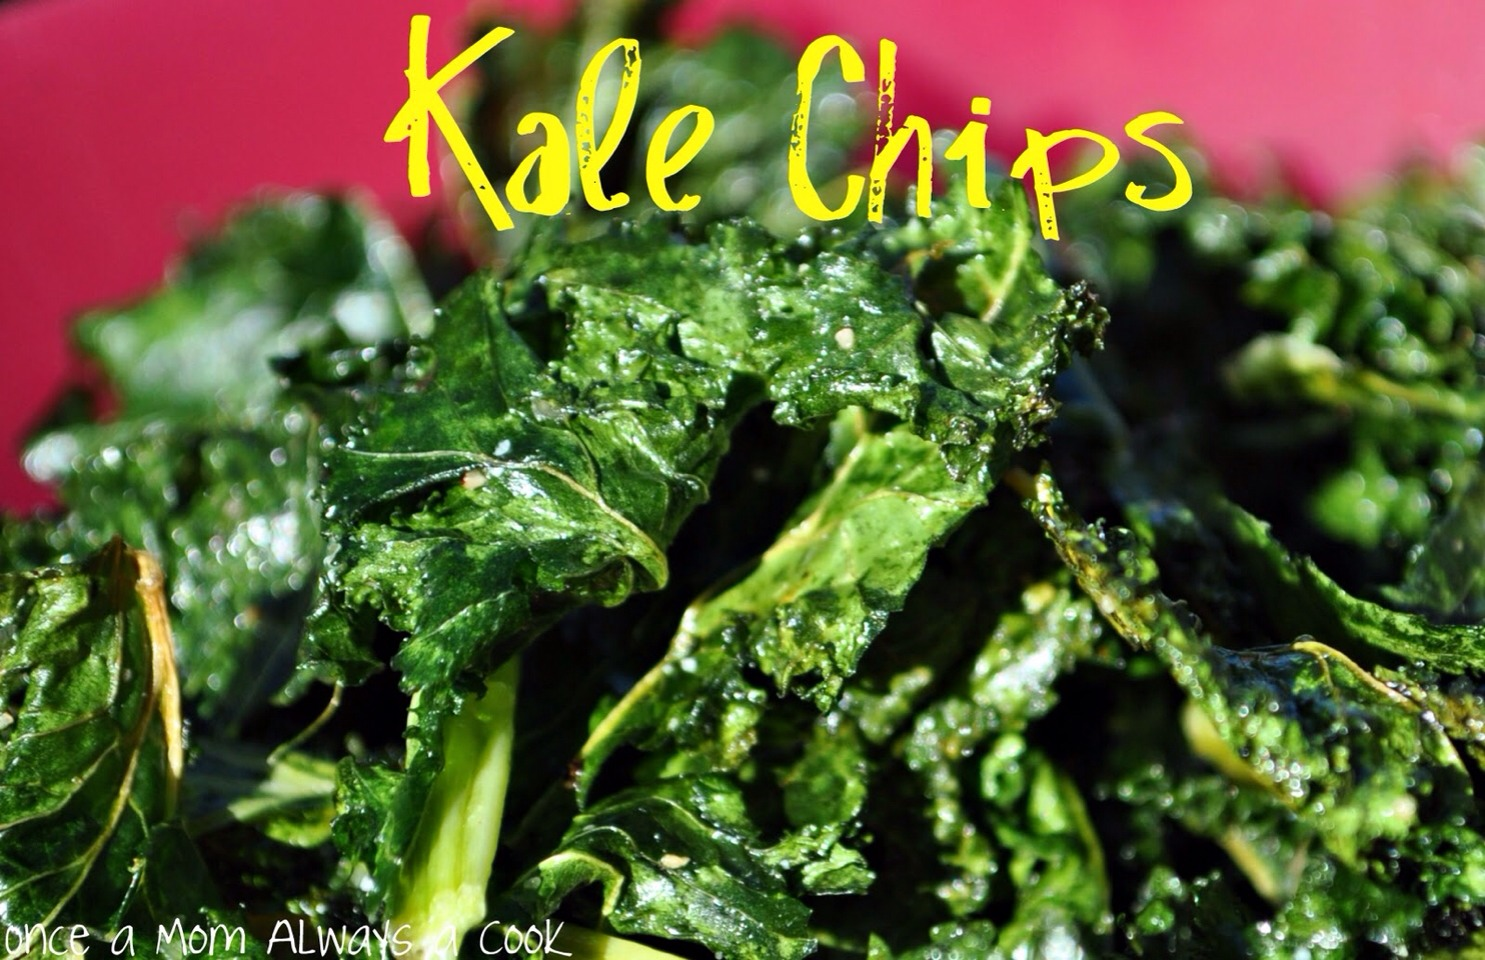 Fry kale up in a little bit of oil. It's crispy just like chips with out all the fat.  You can even sprinkle seasonings on it for a flavored taste!